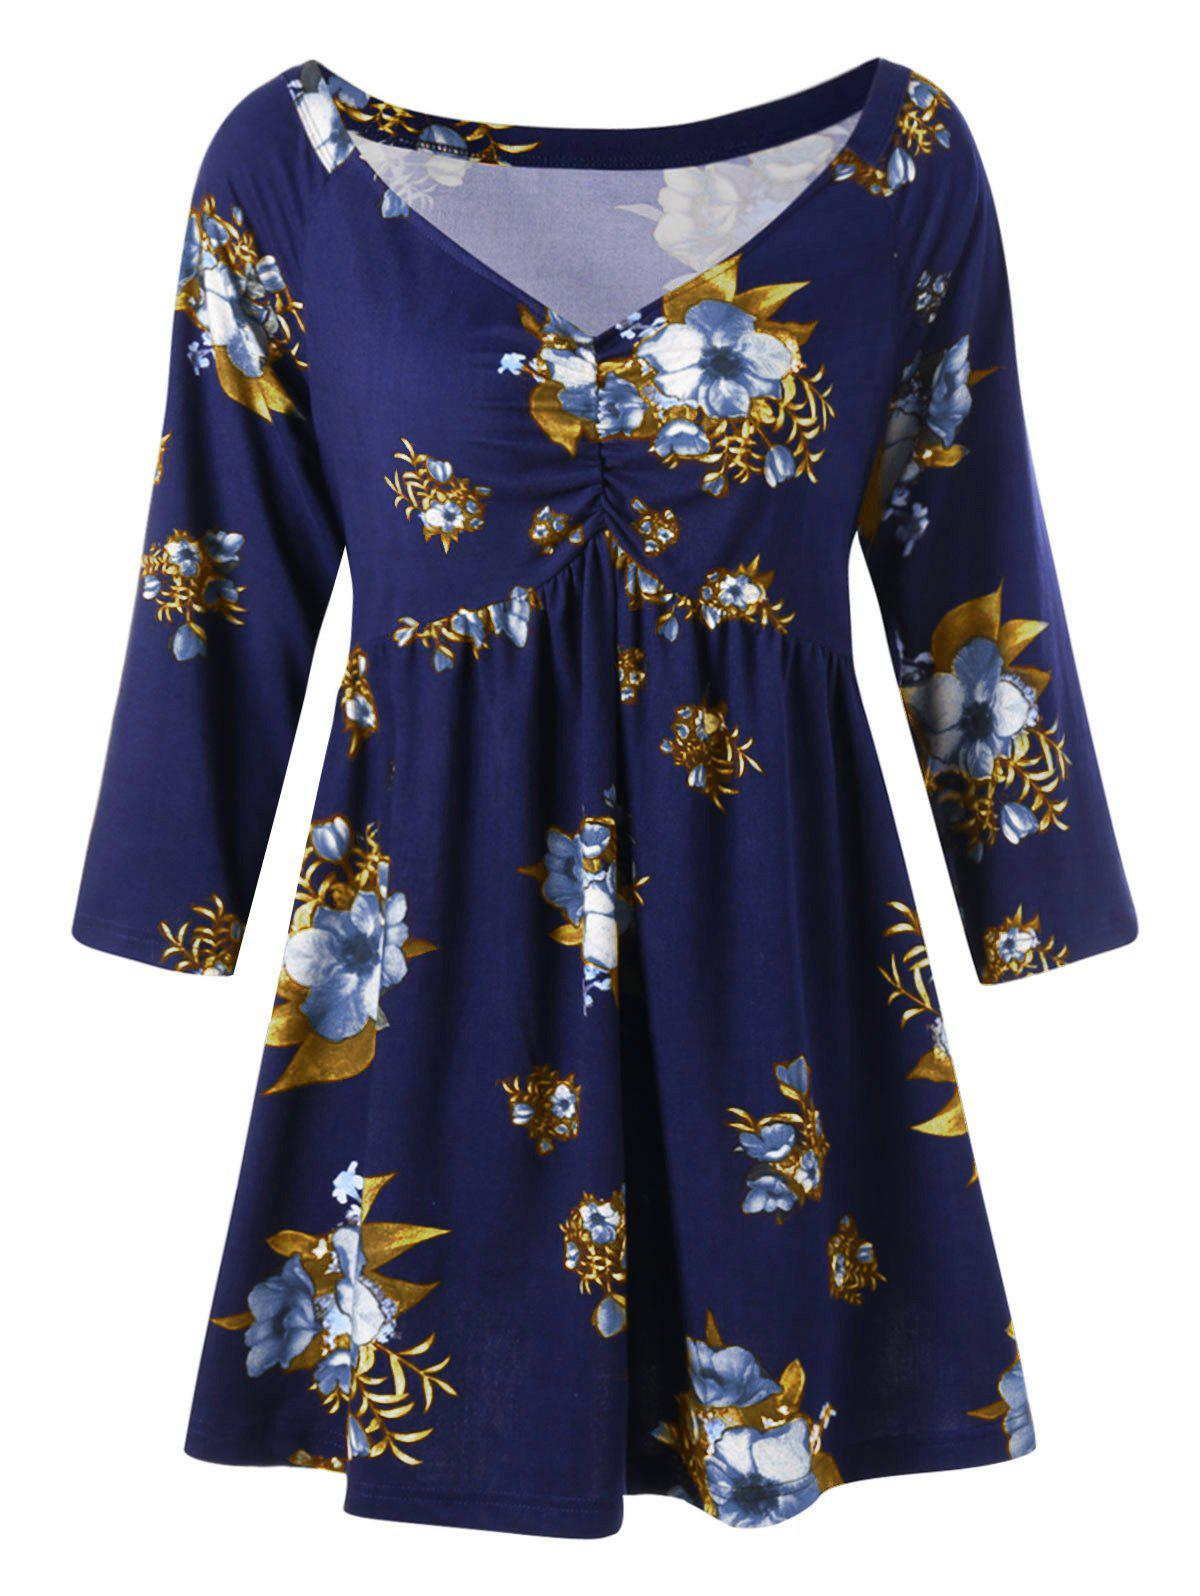 Plus Size Floral Print Tunic T-shirtWOMEN<br><br>Size: 3XL; Color: BLUE AND YELLOW; Material: Polyester,Spandex; Shirt Length: Regular; Sleeve Length: Three Quarter; Collar: V-Neck; Style: Fashion; Season: Fall; Pattern Type: Floral; Weight: 0.3000kg; Package Contents: 1 x T-shirt;